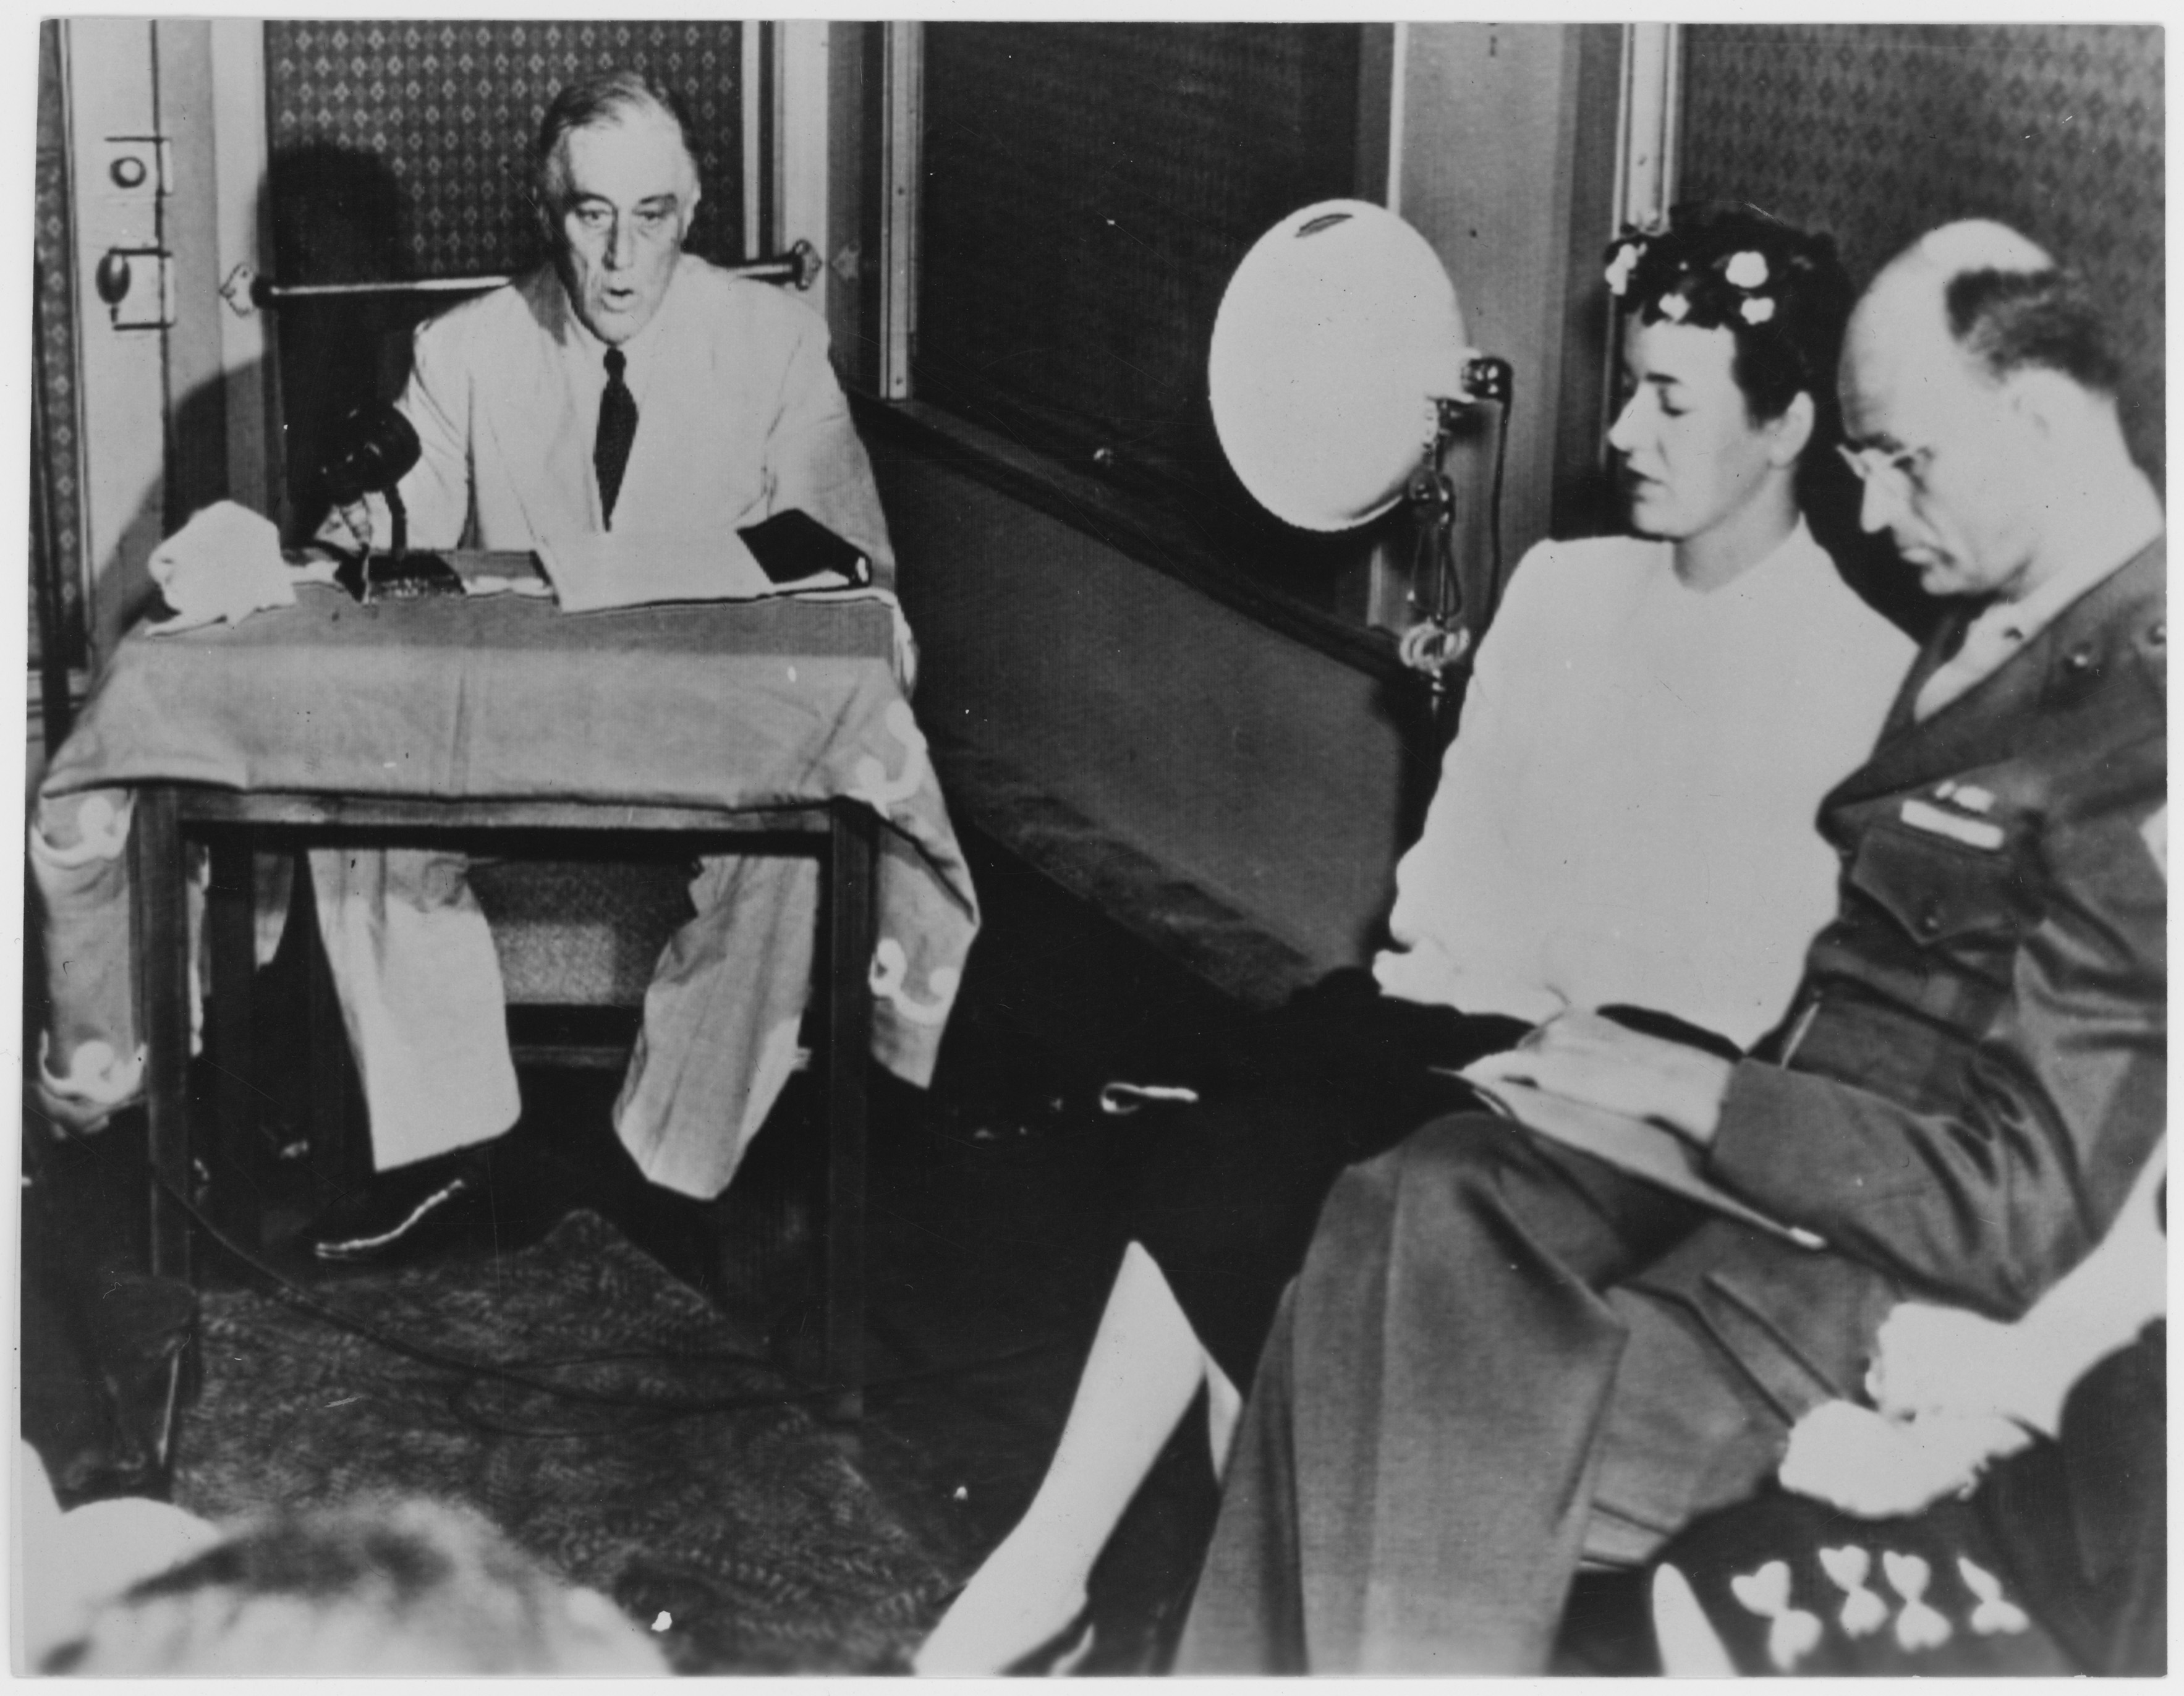 Franklin D. Roosevelt accepts nomination by DNC at Chicago from train at San Diego, California with Mr. & Mrs. James Roosevelt, July 20 1944. NPx 69-26